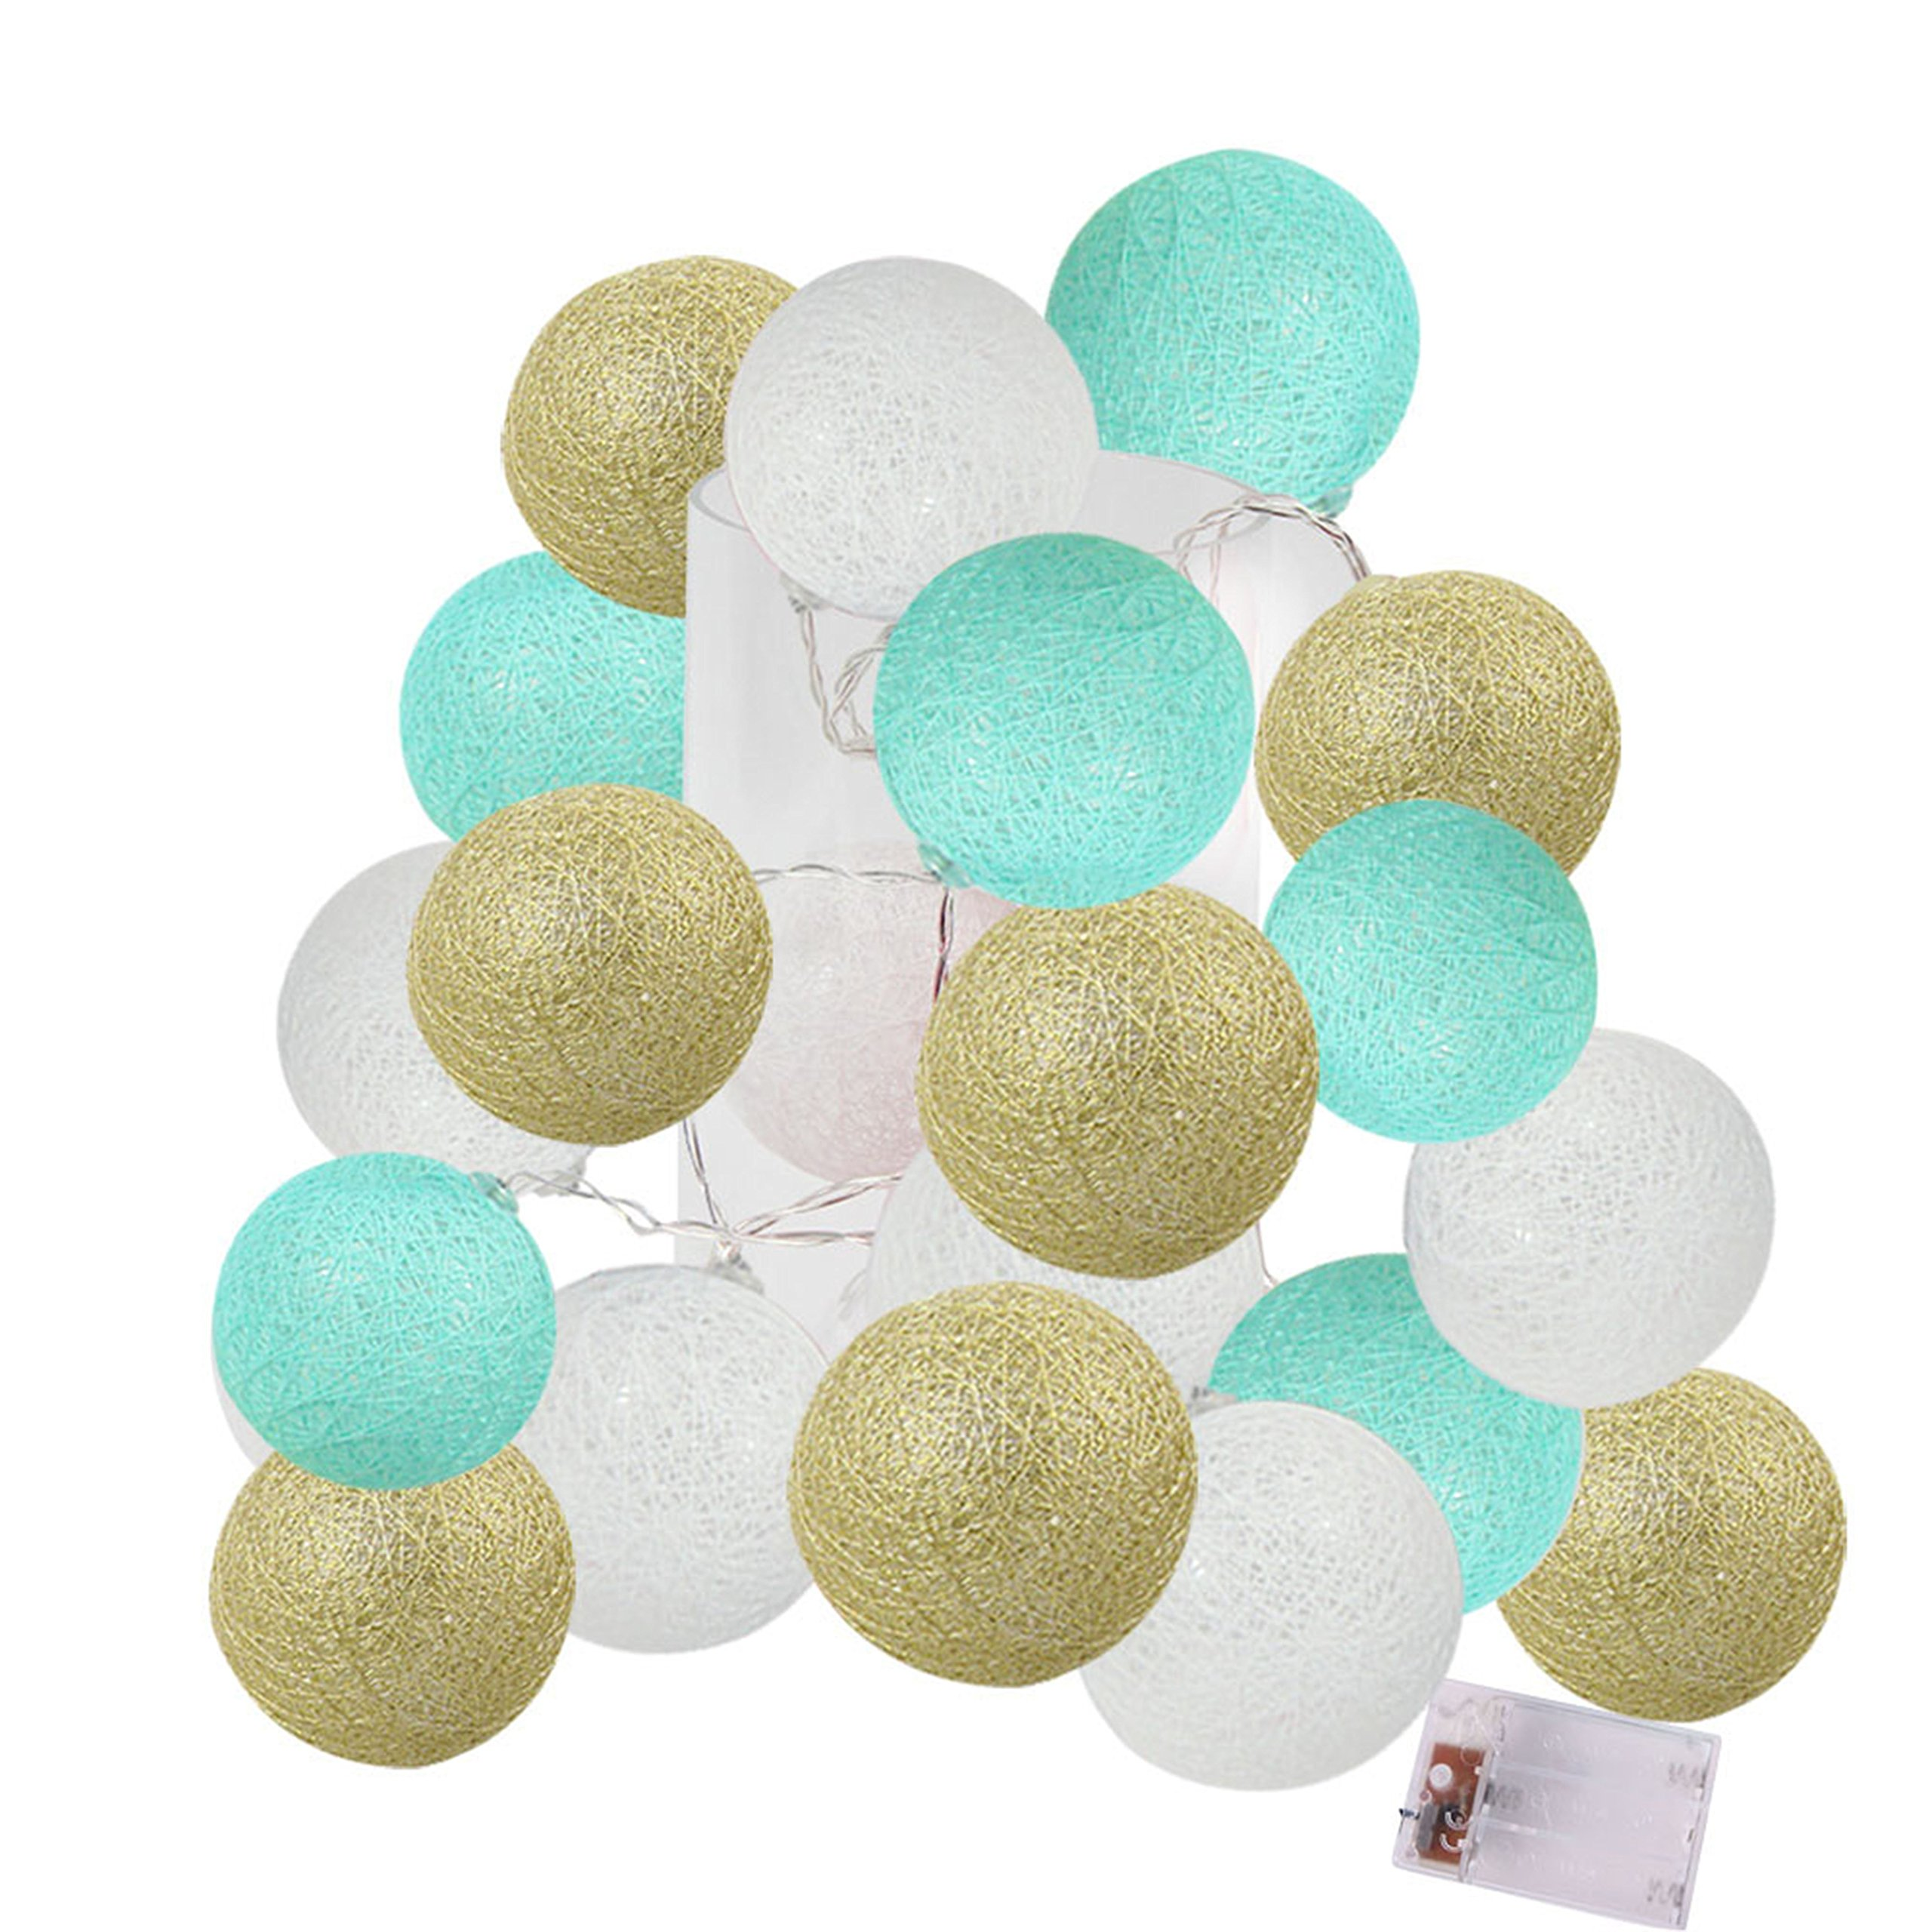 2.5m 20 LED Mint Green Gold Whtie Cotton Balls String Lights Battery Operated LED Garland Outdoor Garden Wedding Party Christmas Decorations Kids Room Decoration Lights